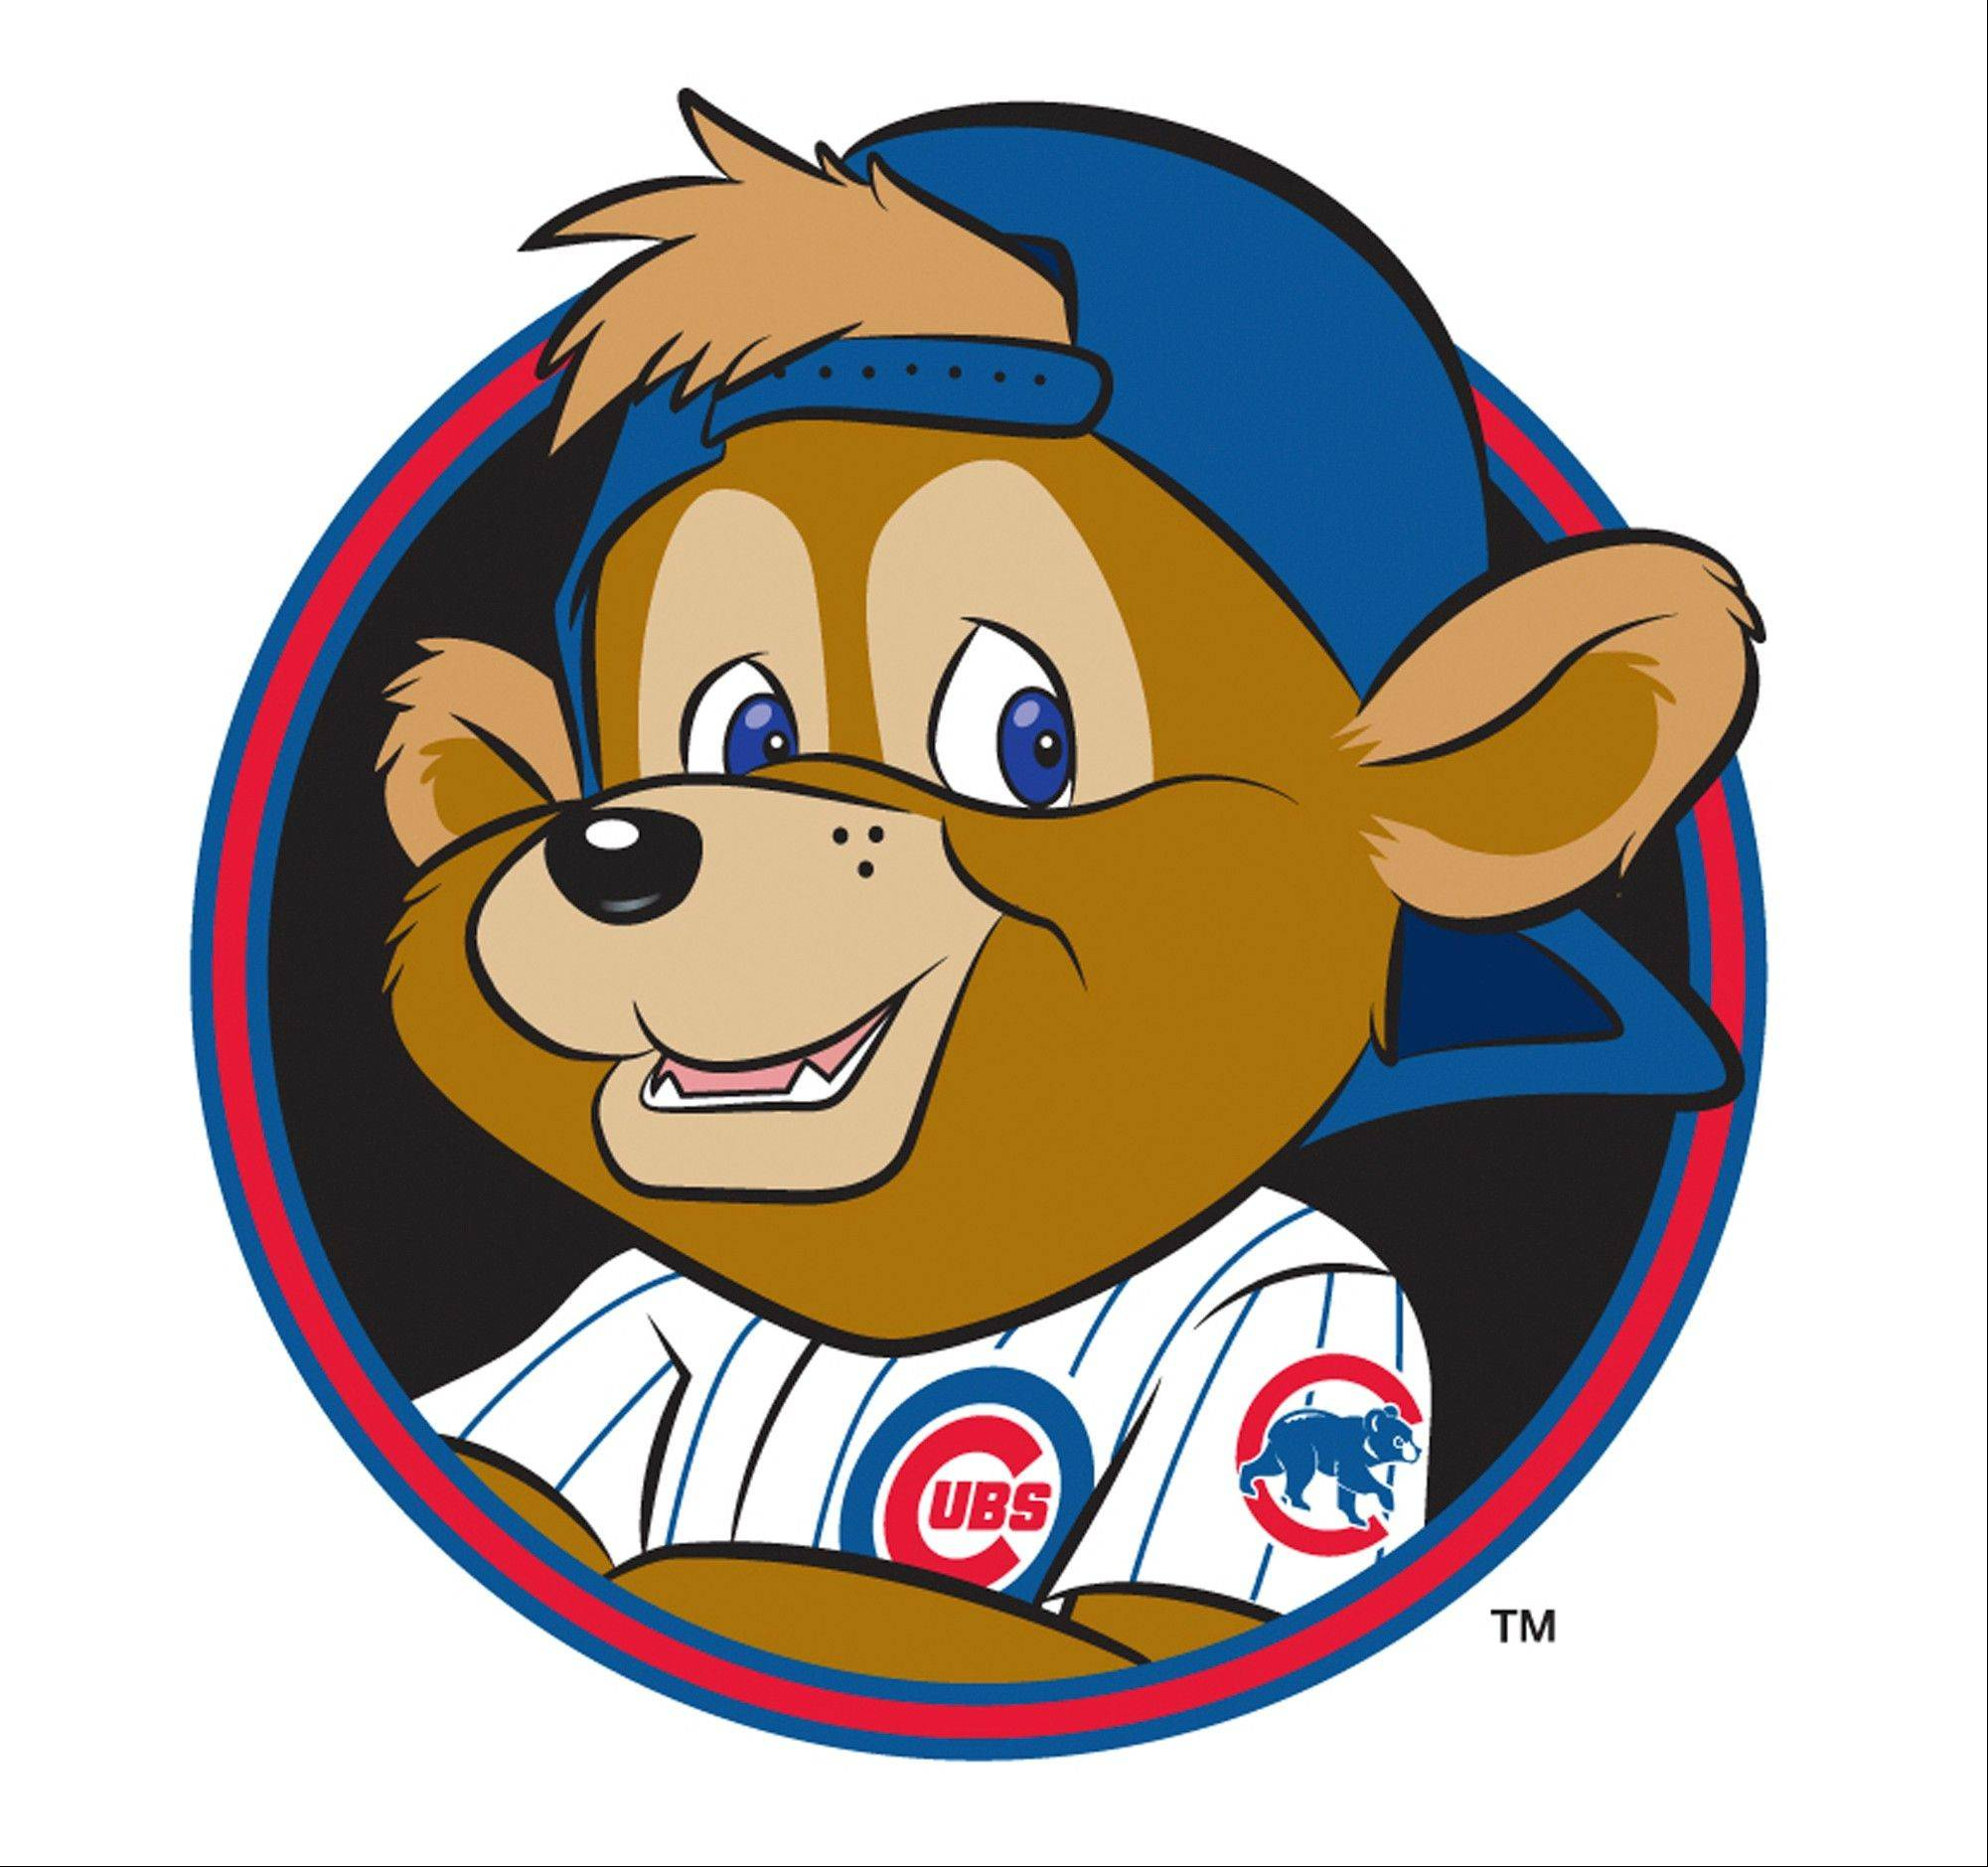 This artist's rendering provided Monday, Jan. 13, 2014, by the Chicago Cubs shows Clark, a new mascot being introduced on Monday for the first time in team history. The team will officially introduce Clark during a visit with children at Advocate Illinois Masonic Medical Center's Pediatric Developmental Center in Chicago. The team plans on having Clark greet fans at Wrigley Field before and during games.